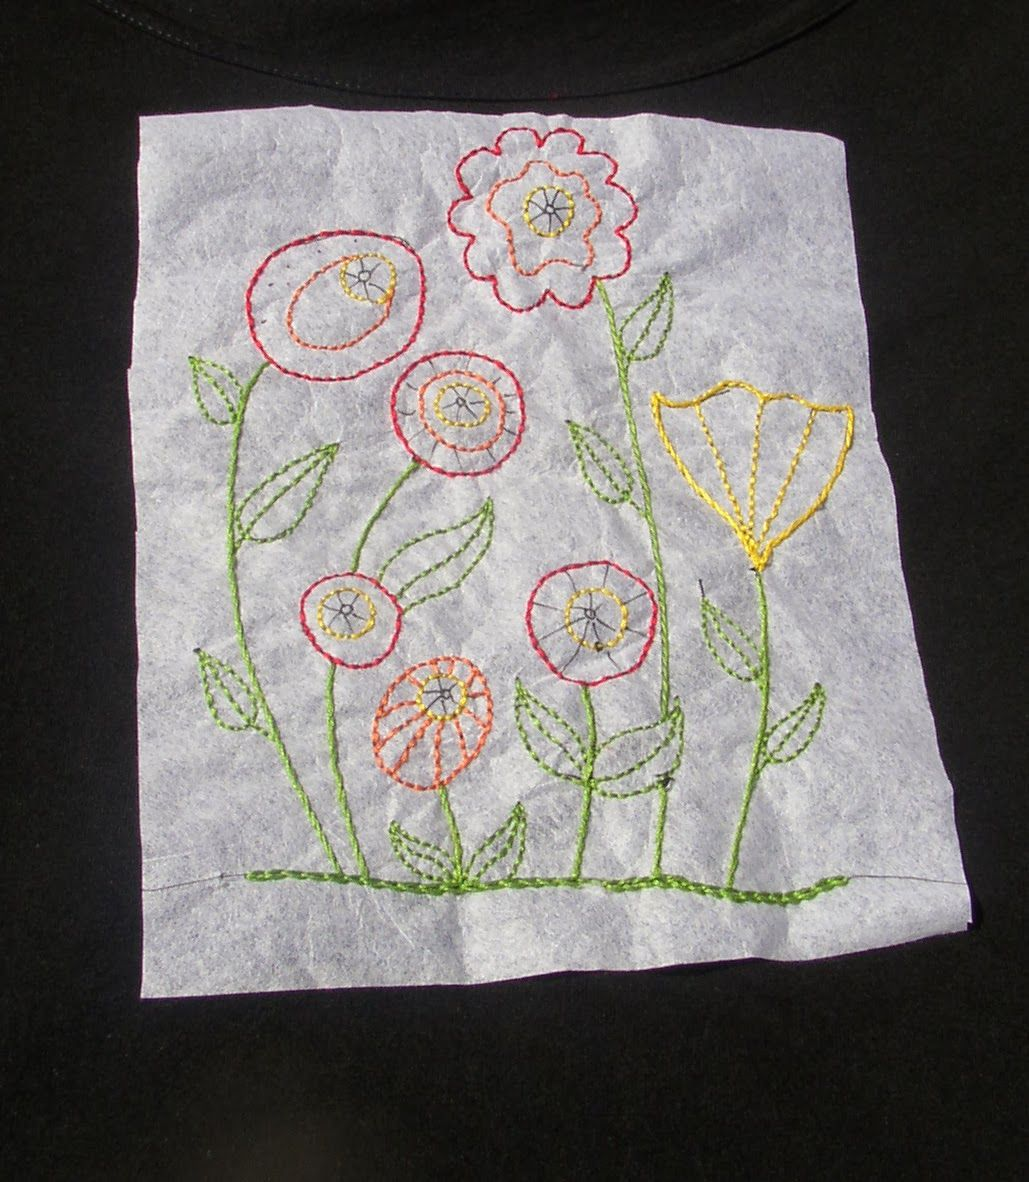 Hand stitched stories transferring embroidery designs to tshirts